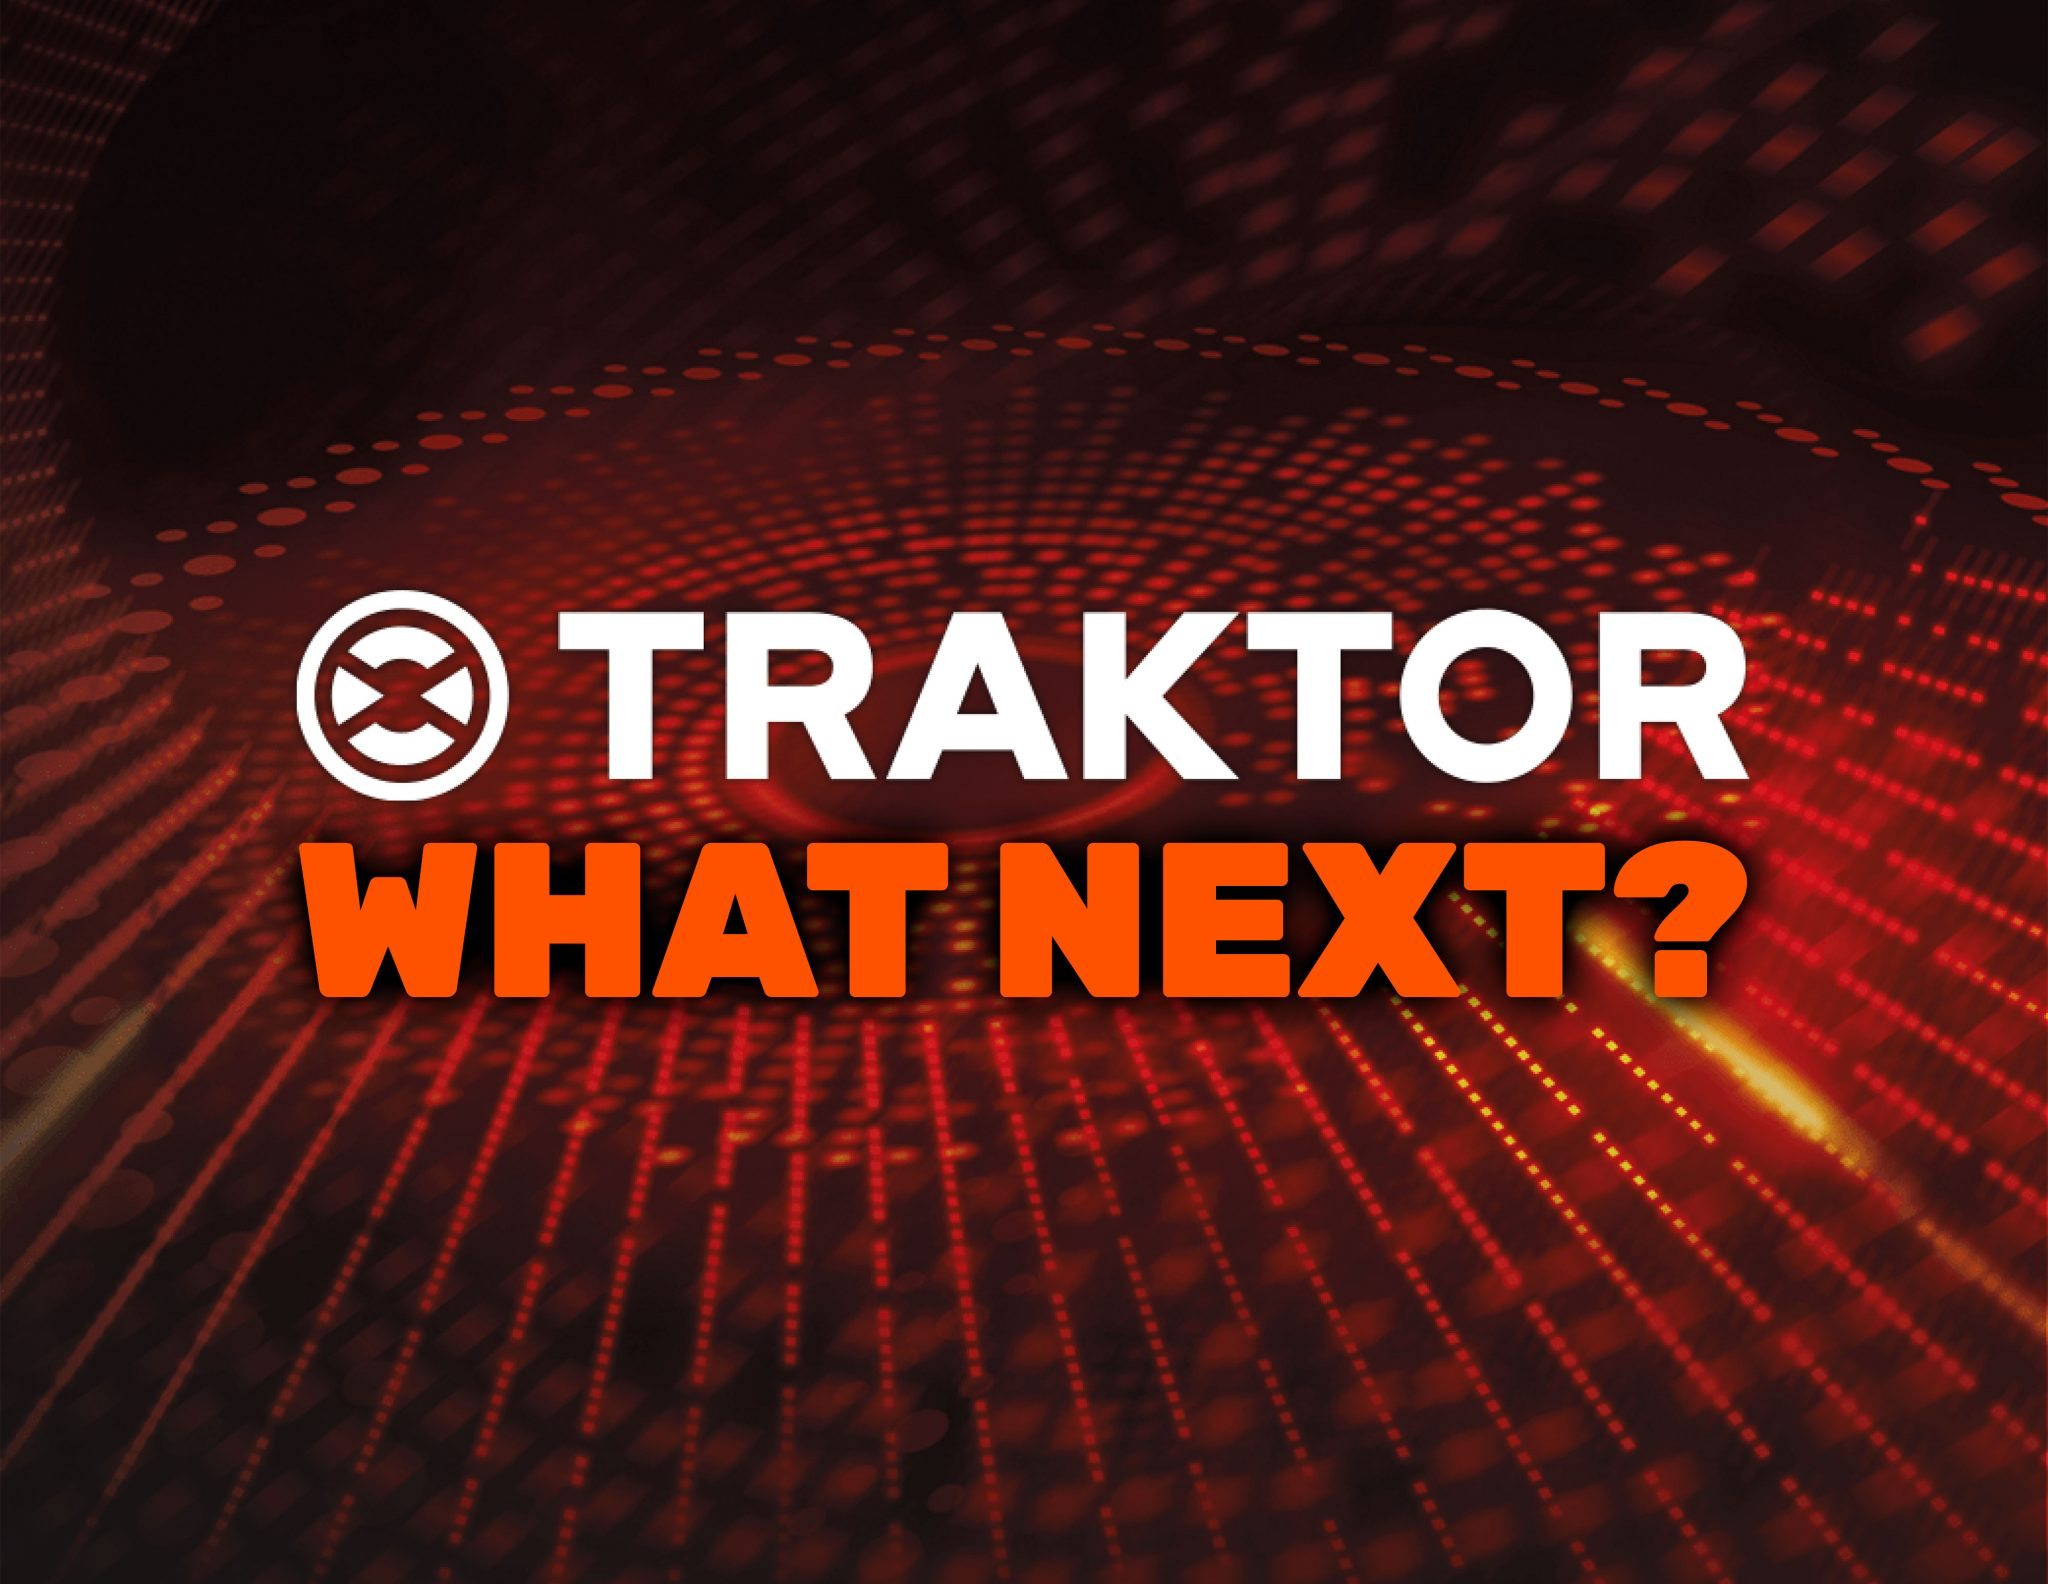 WHAT NEXT?: What do you want from Traktor Pro? | DJWORX